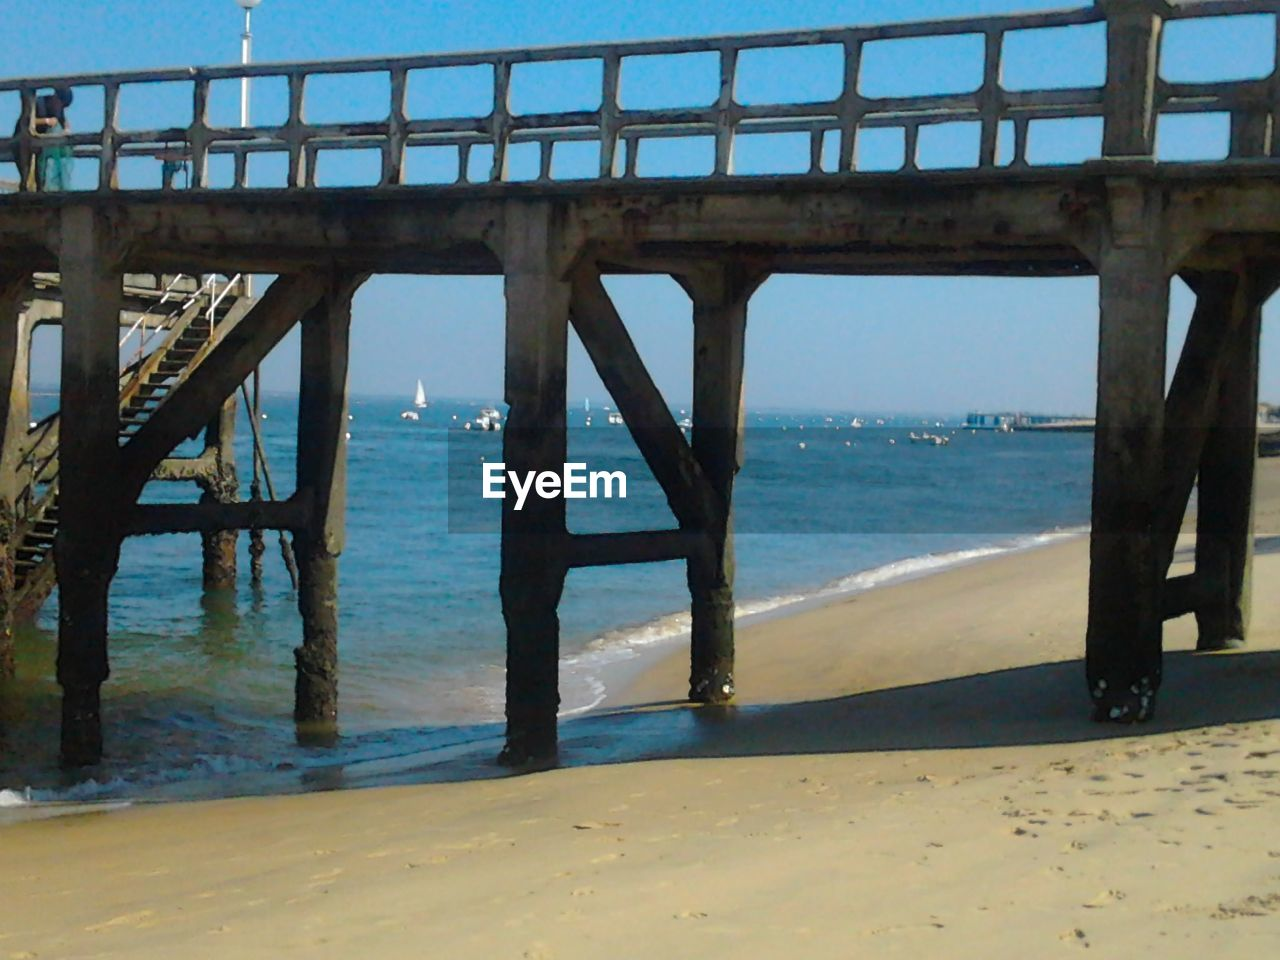 sea, bridge - man made structure, built structure, horizon over water, water, architecture, connection, beach, pier, day, nature, sunlight, scenics, sand, sky, outdoors, architectural column, underneath, no people, blue, girder